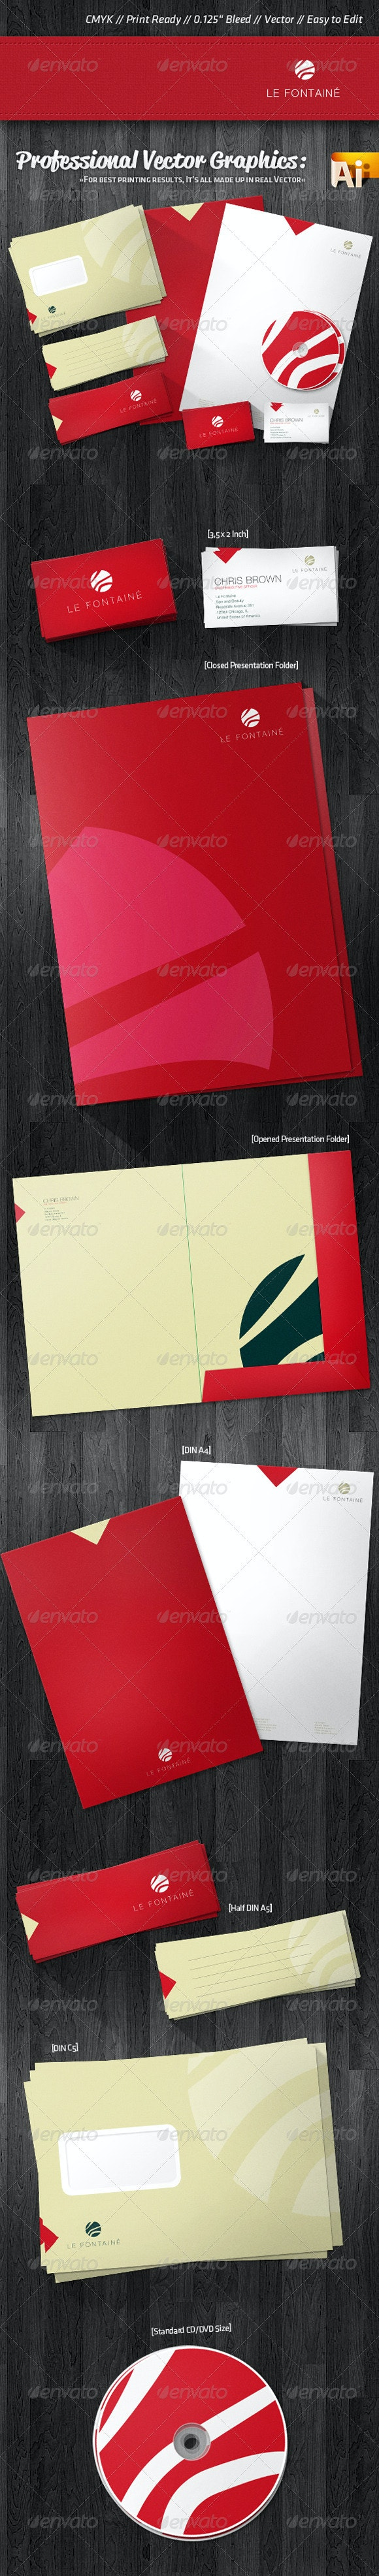 Professional Wellness Corporate Identity Package - Stationery Print Templates